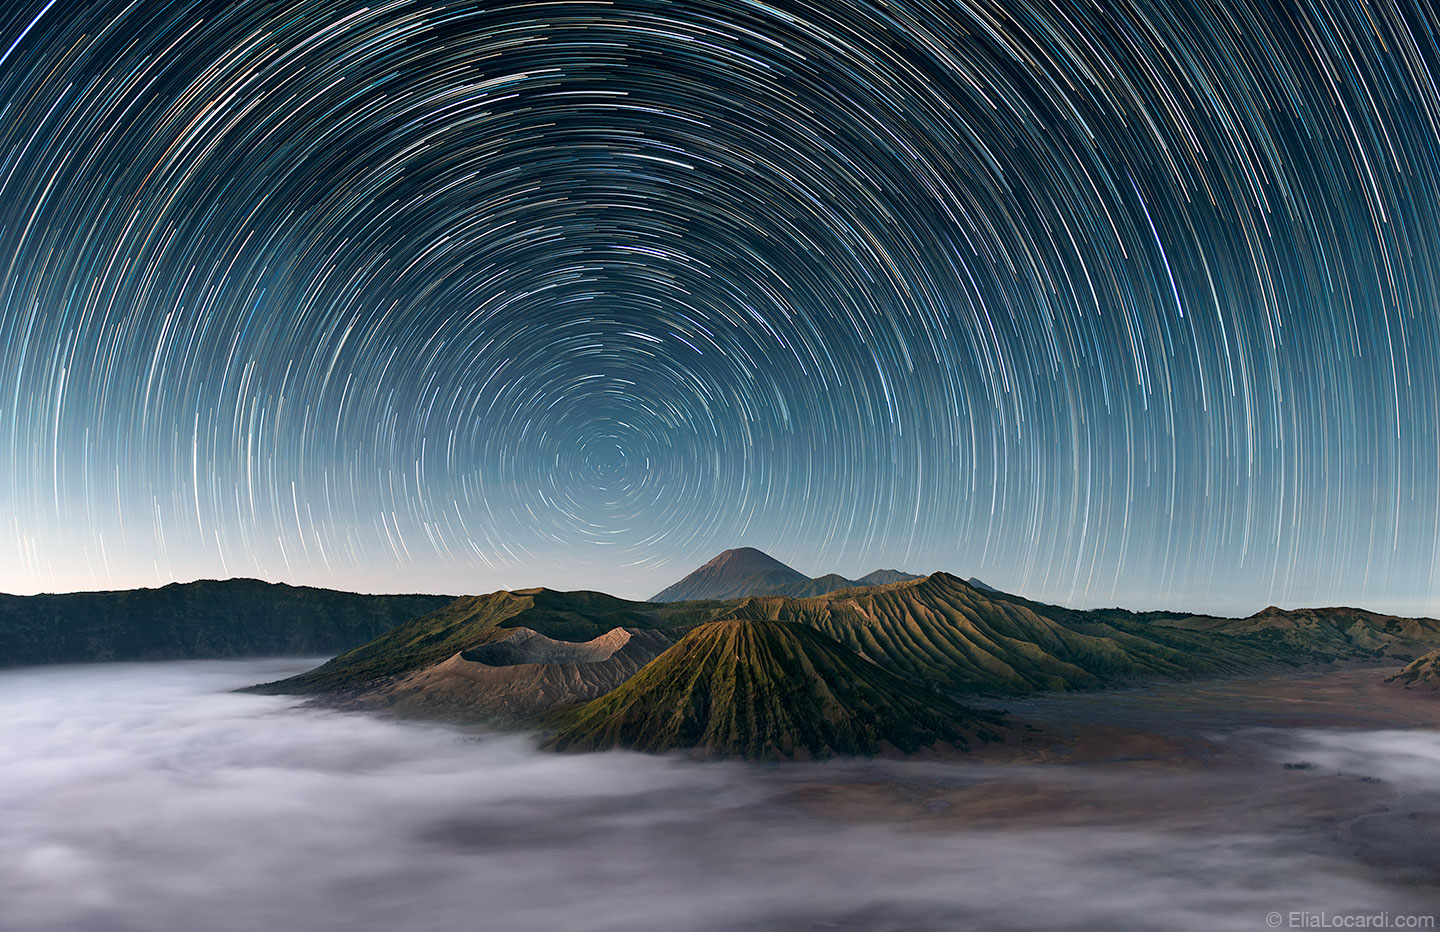 The stars dance above the extraordinary Mt Bromo Indonesia as the morning fog rolls through the caldera.